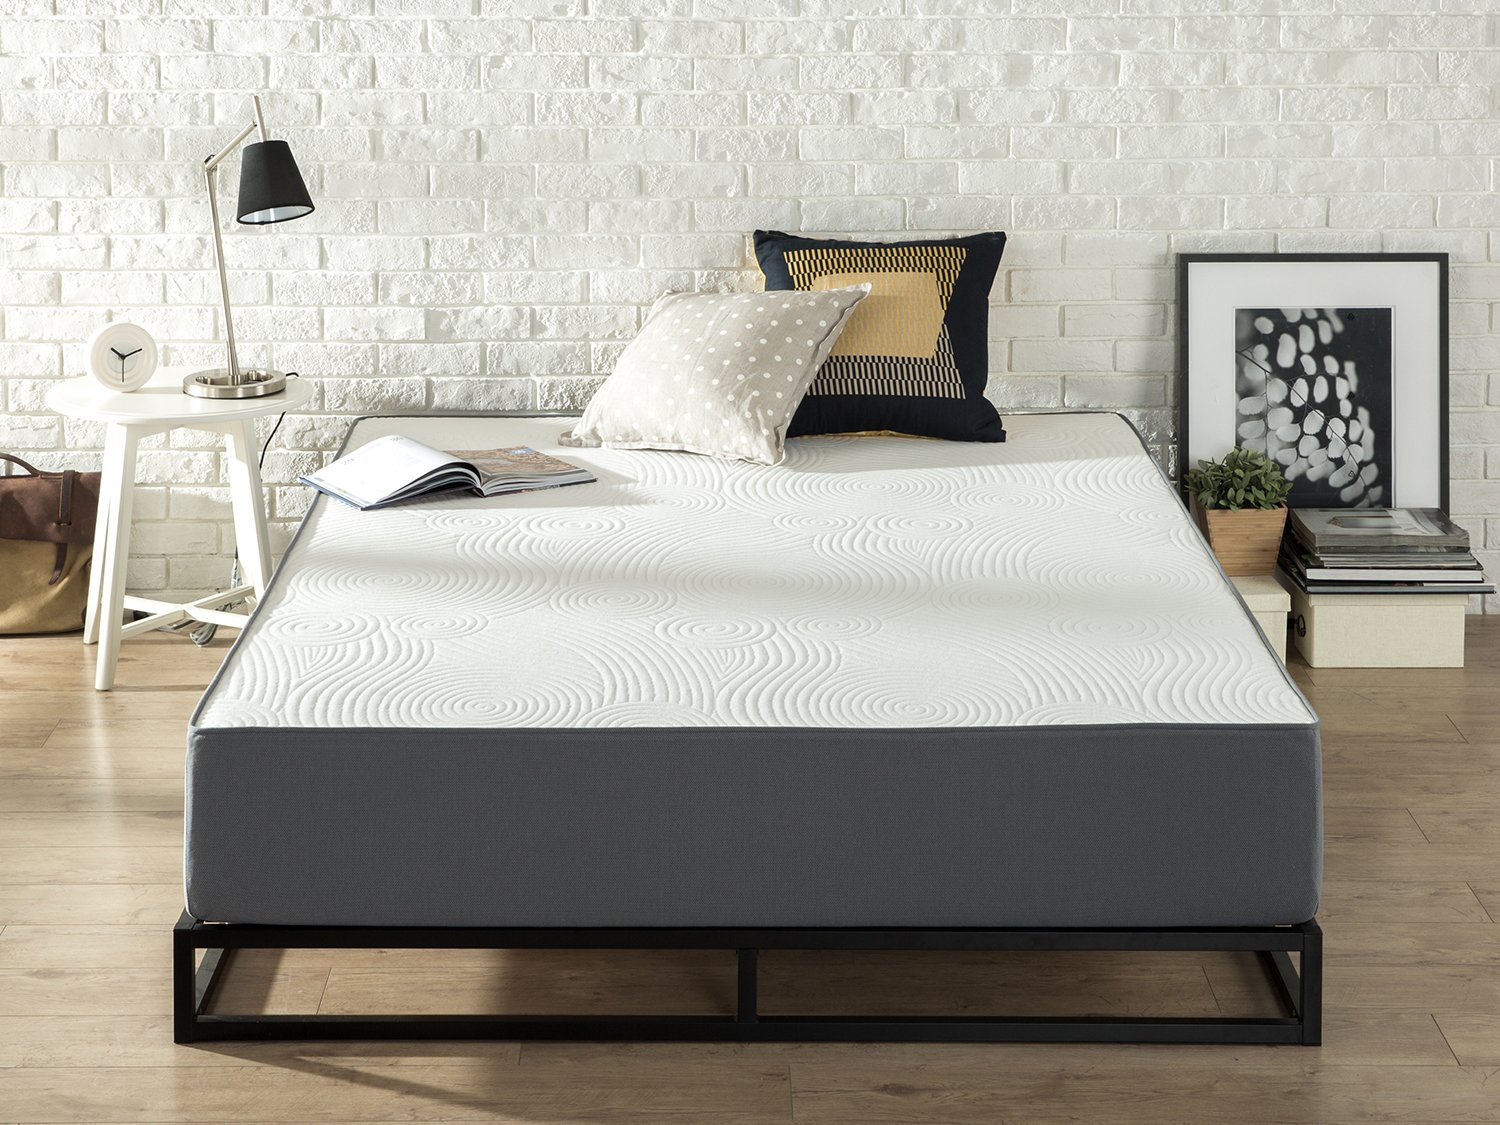 Zinus Responsive Memory Foam 10 Inch / Firm / Universal Comfort Support Mattress, King